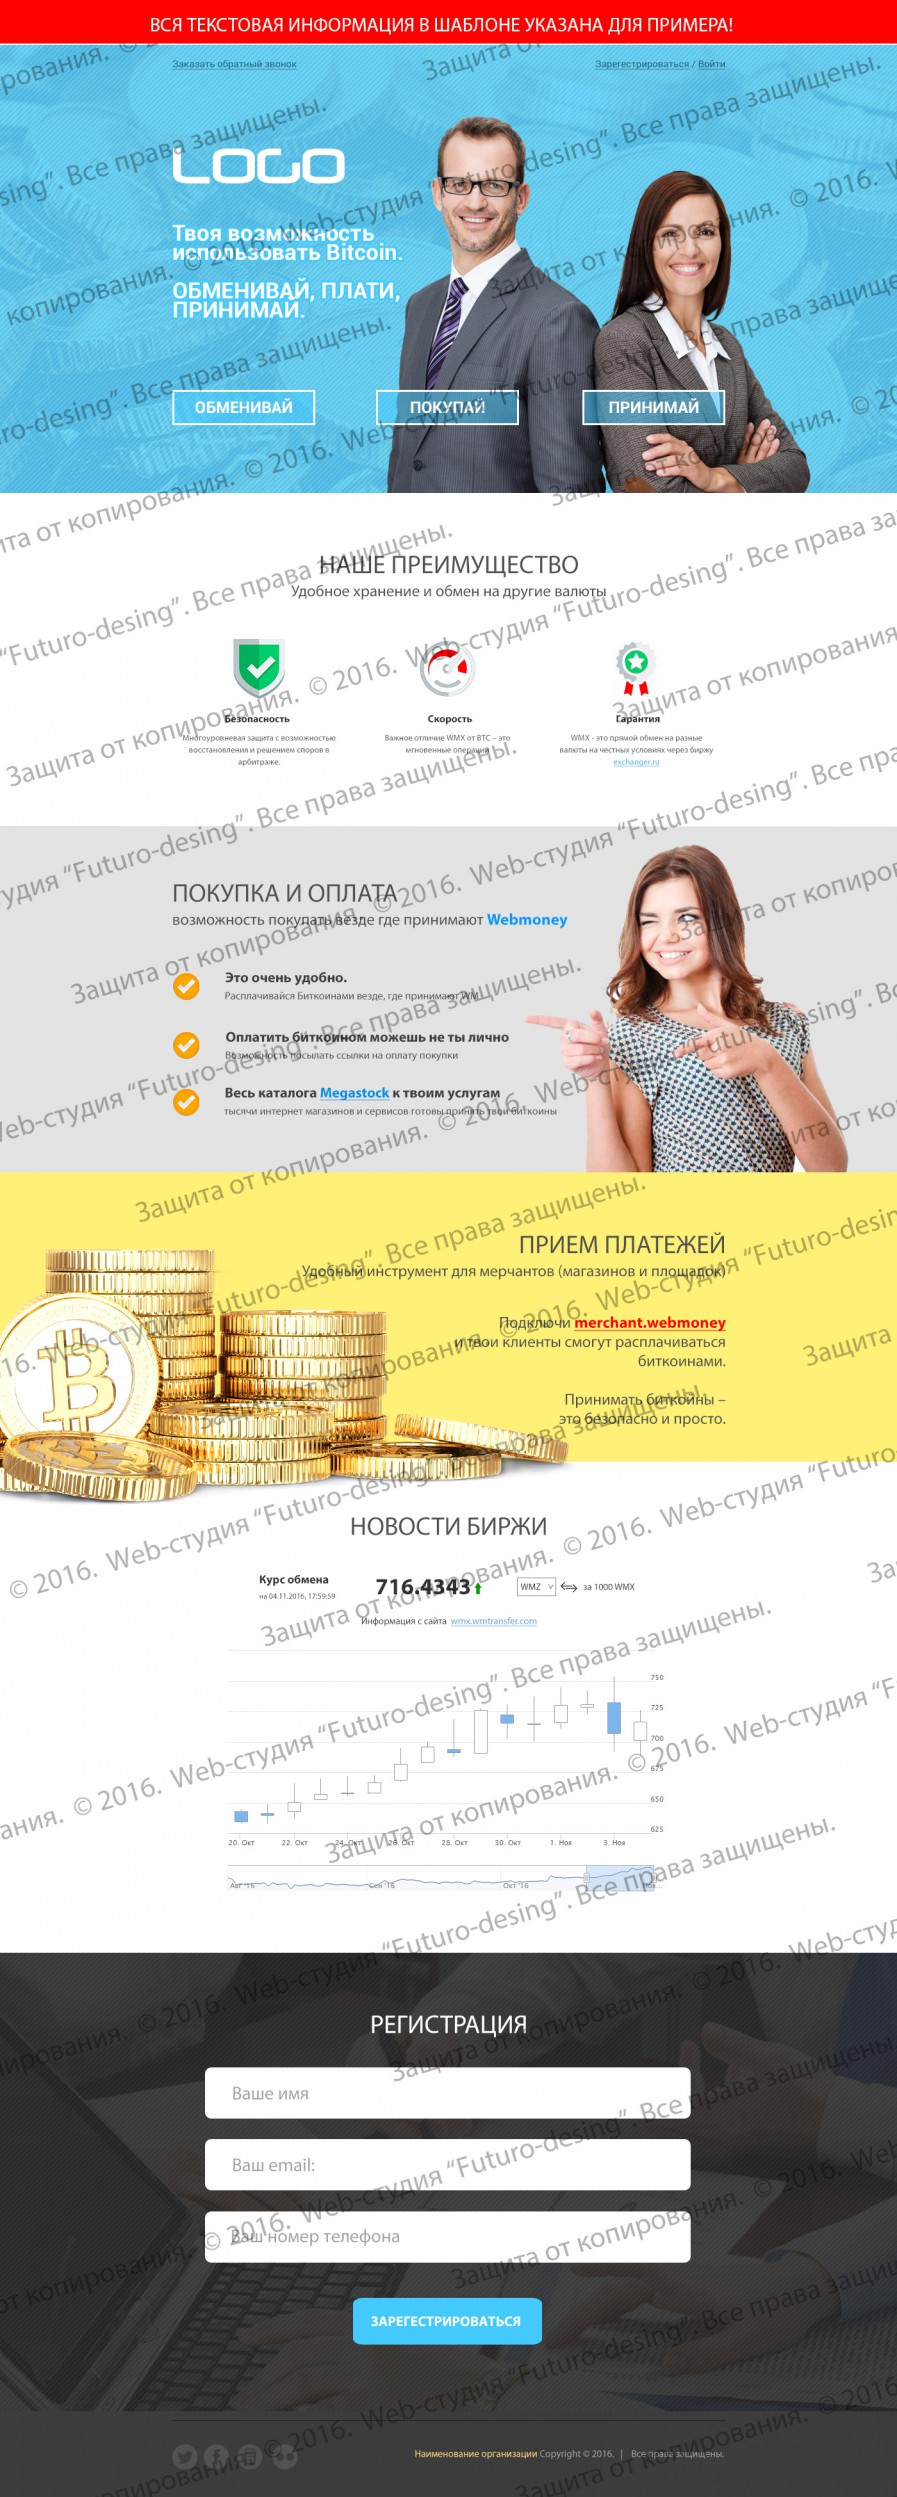 Landing page Bitcoin business